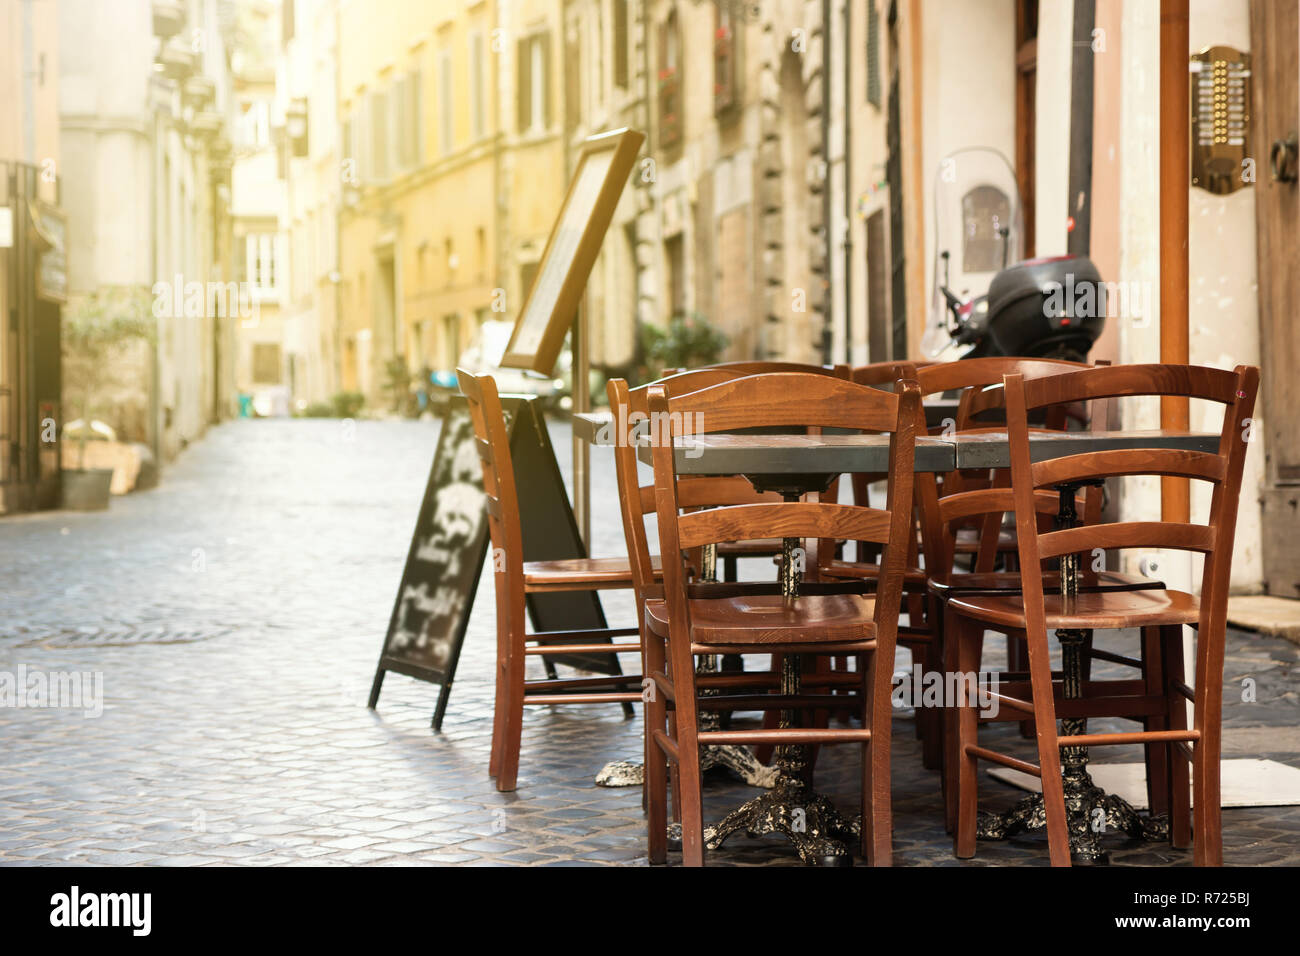 Empty Dining Table With Chairs Is Standing In A Street Lit By Morning Sunlight